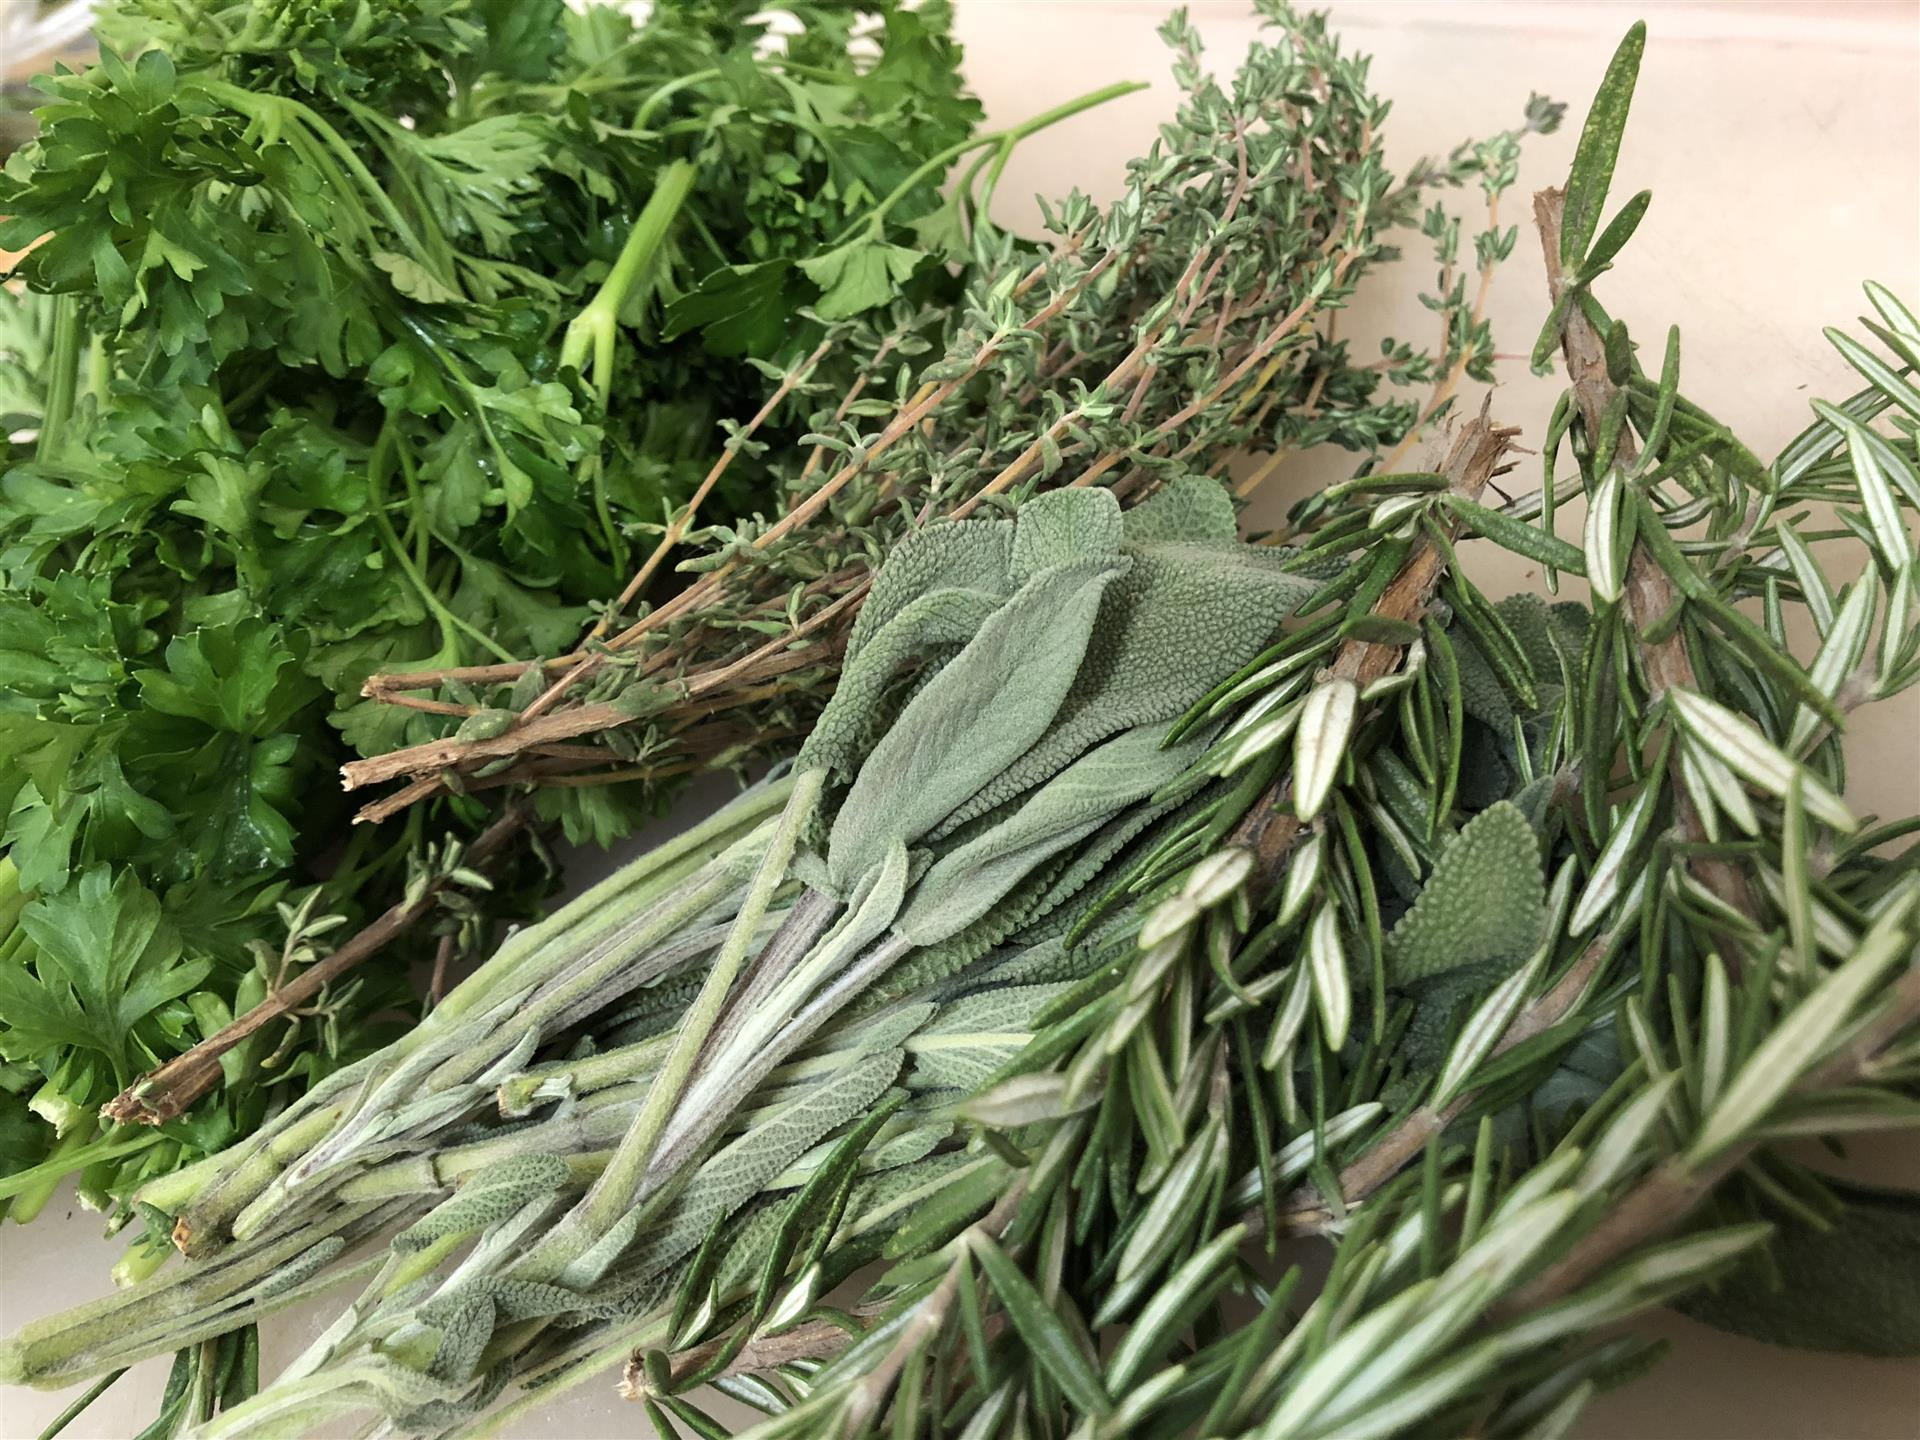 fresh cut herbs including sage, rosemary, thyme and parsley